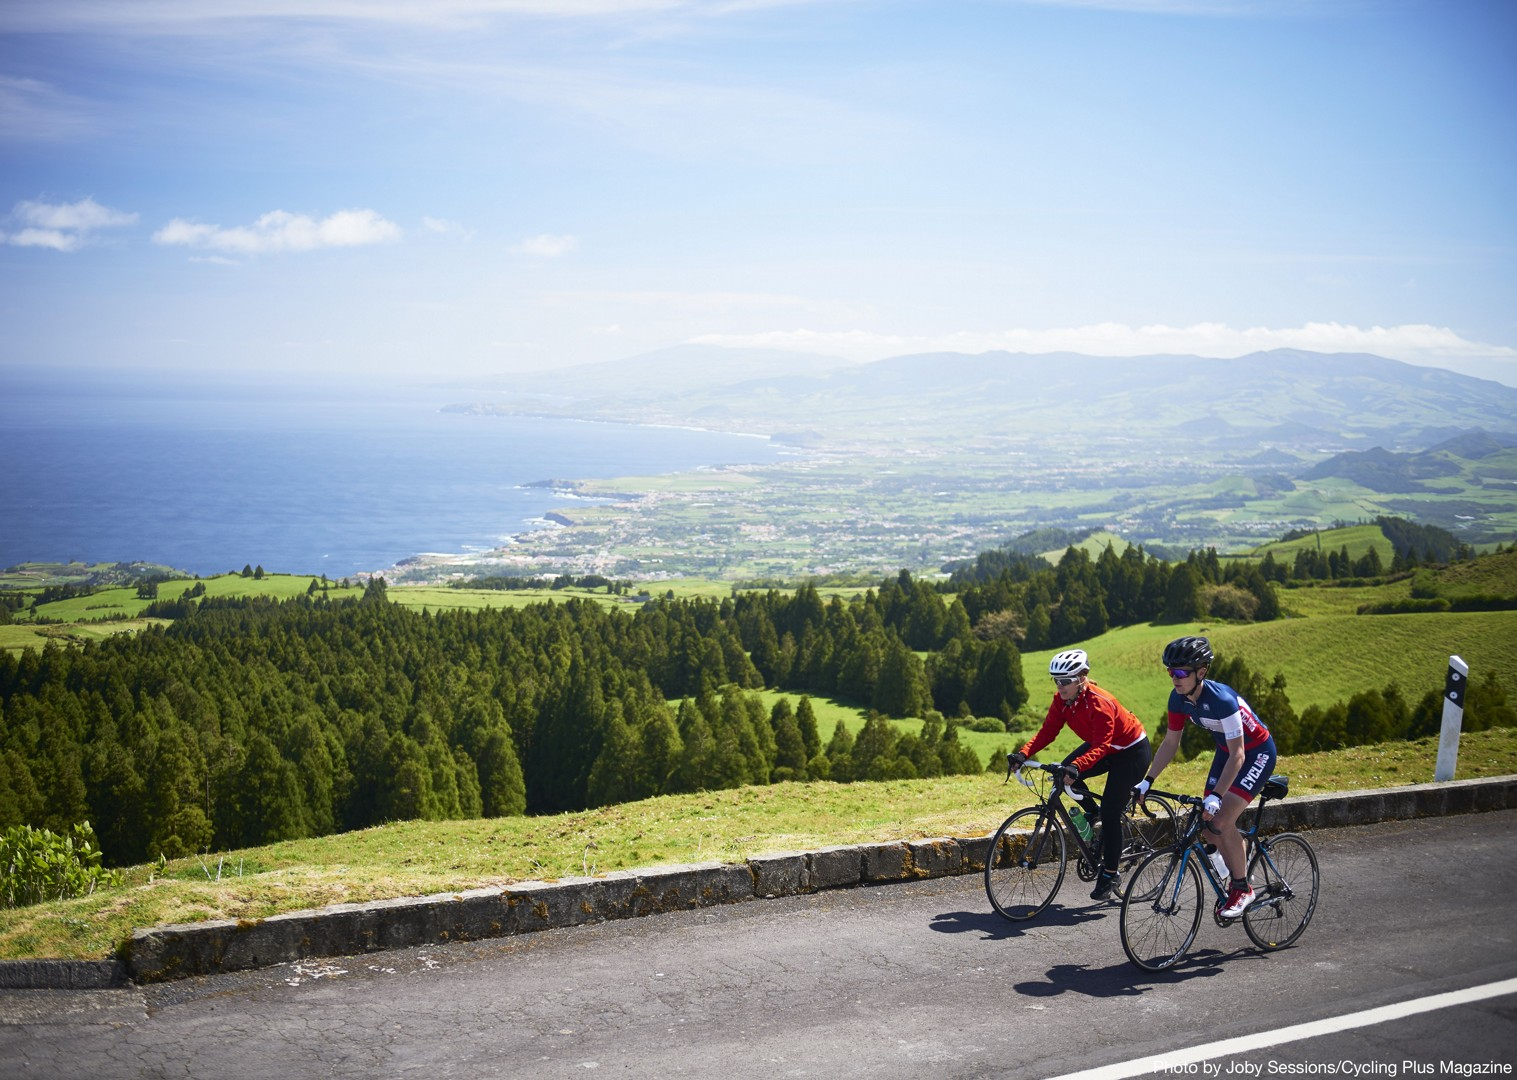 road-cycling-holiday-sete-citades-the-azores-with-saddle-skedaddle.JPG - The Azores - Lost World of Sao Miguel - Road Cycling